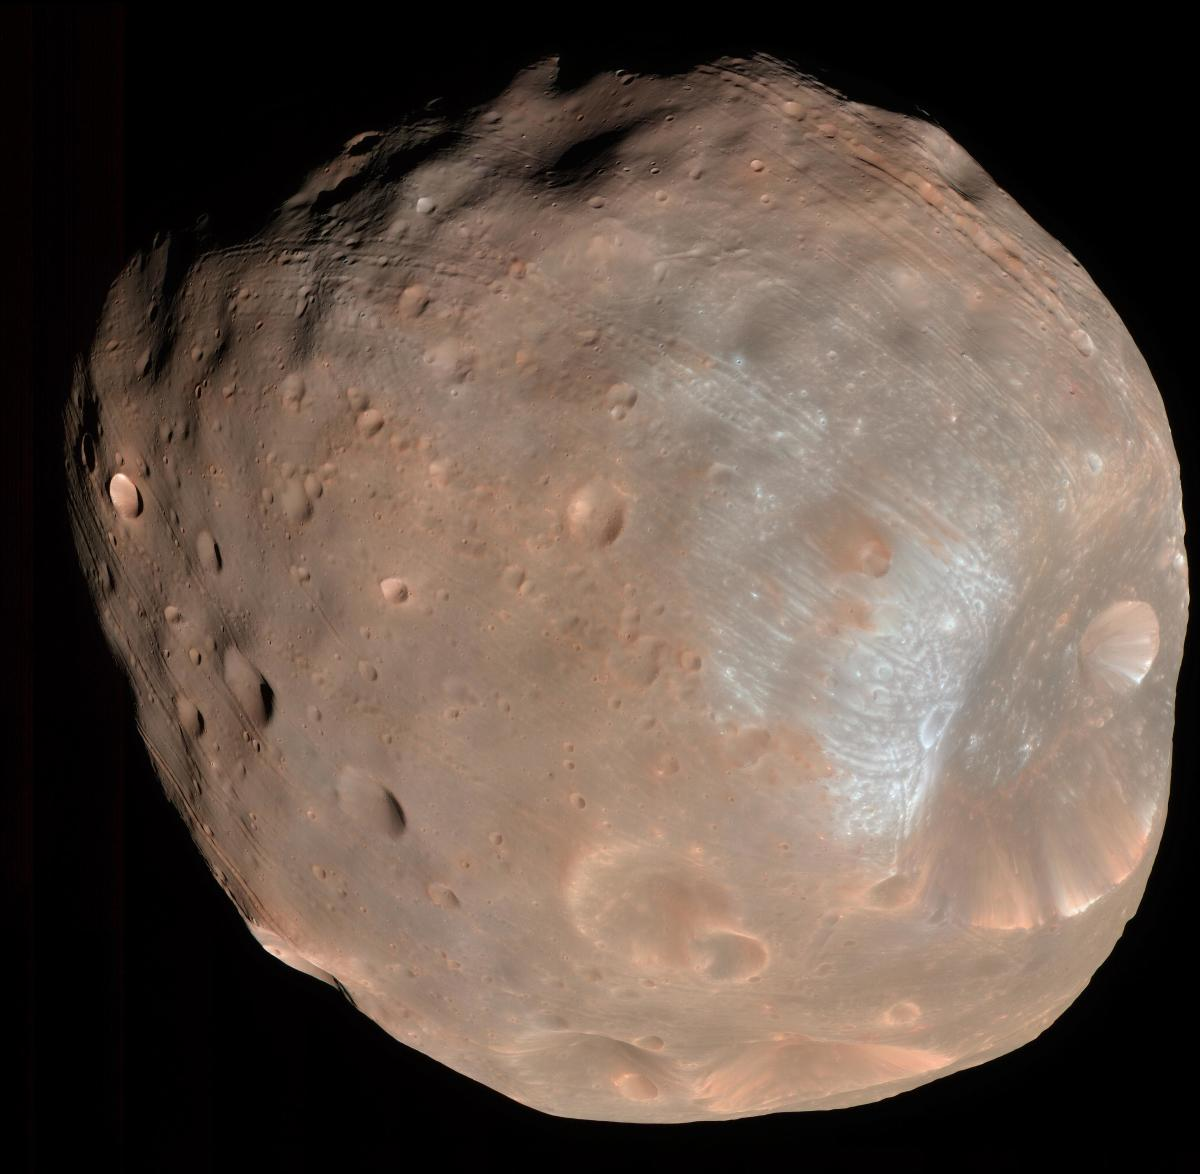 Phobos, a tiny moon of Mars, is doomed to destruction (Mars Reconnaissance Orbiter)